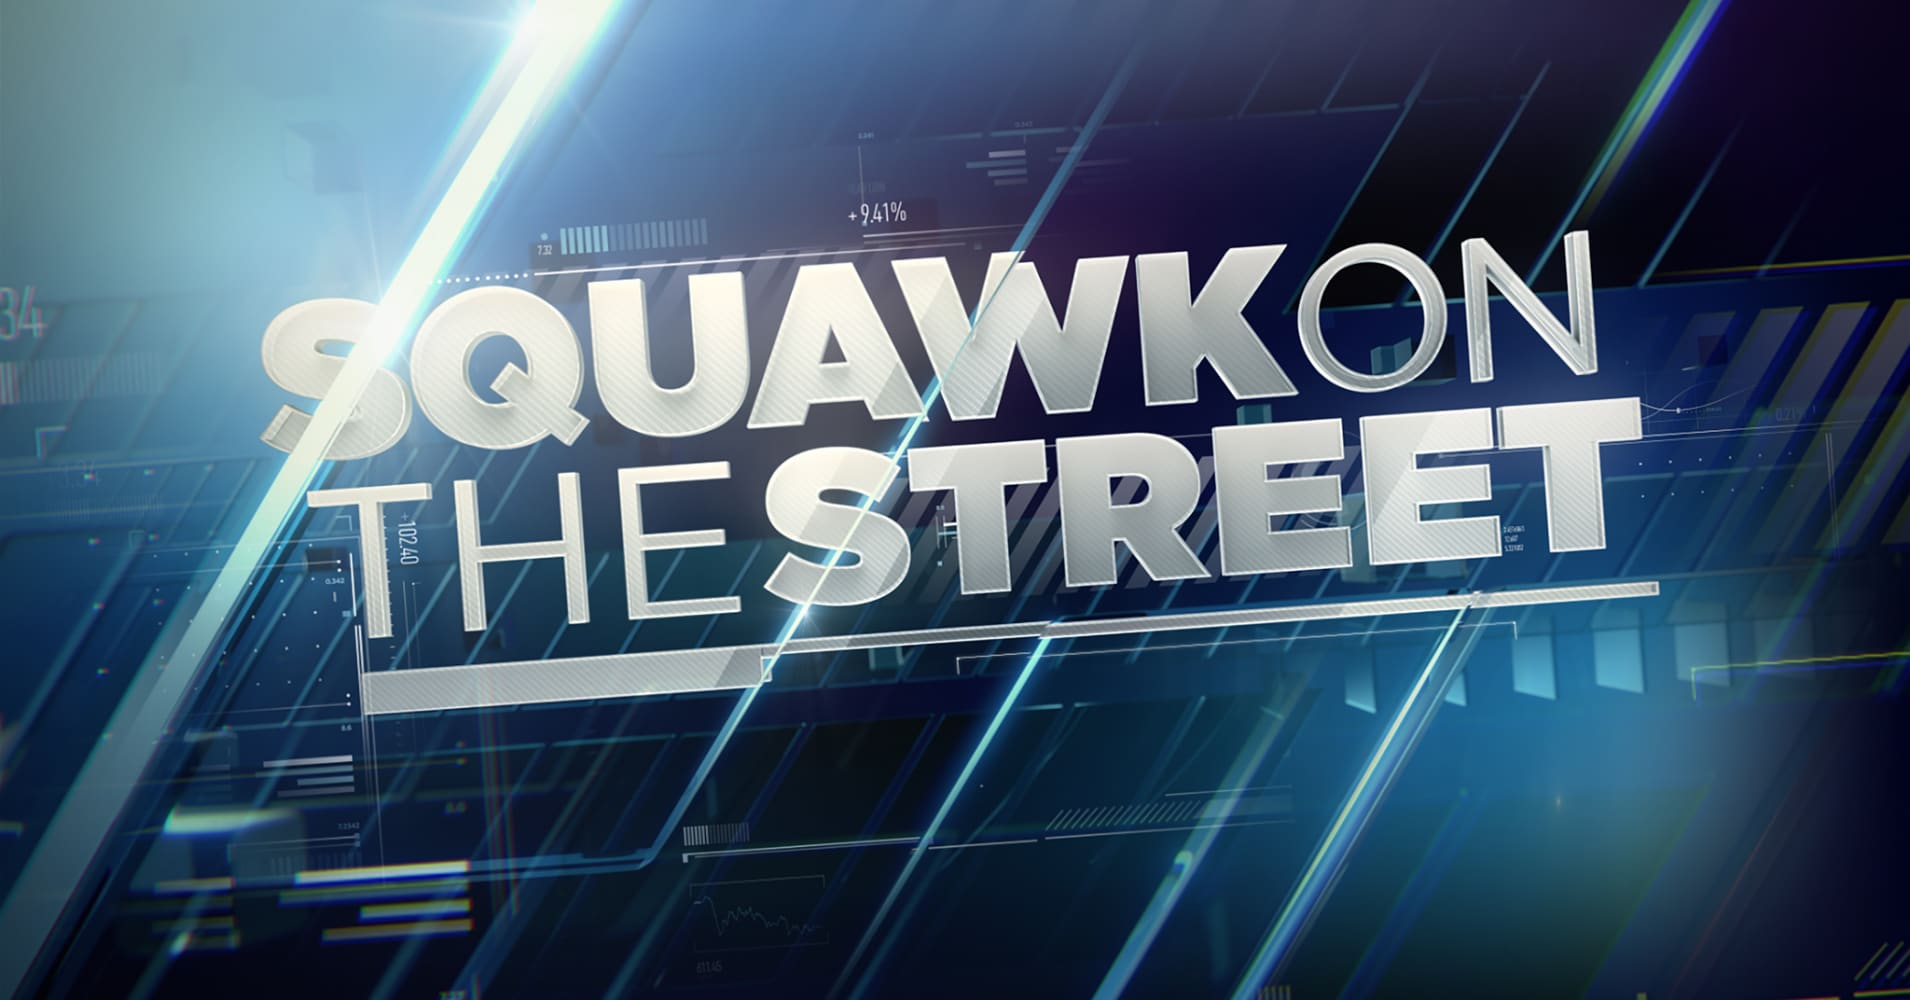 squawk on the street major market news from the new york stock